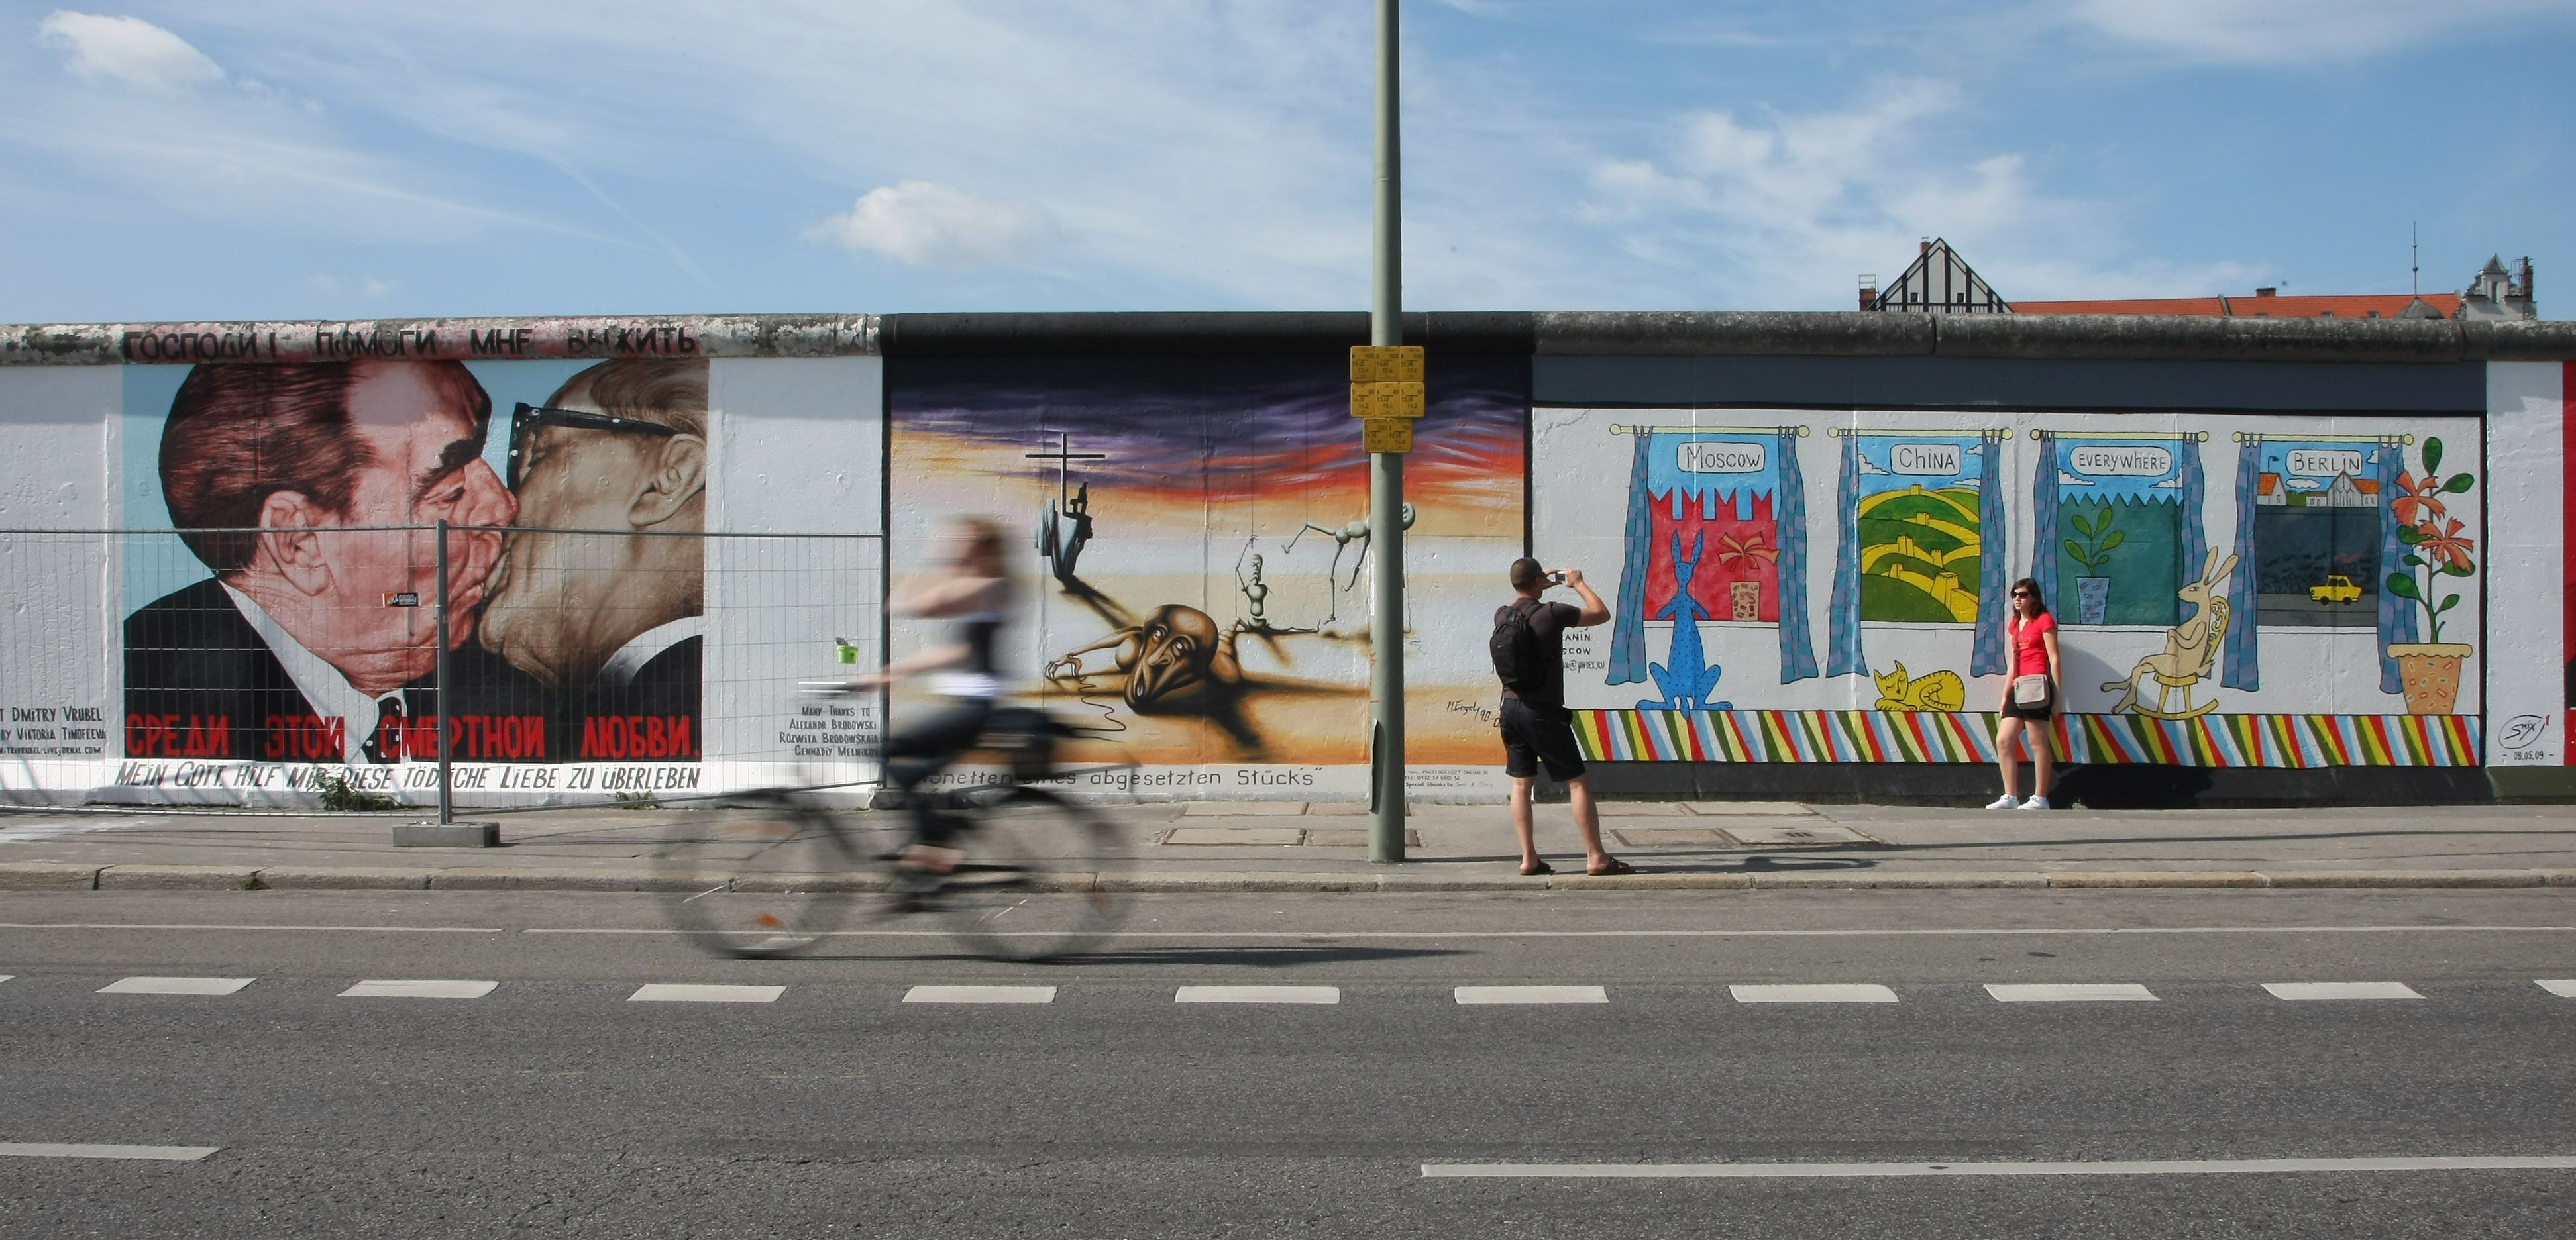 street view of tourists exploring the east side gallery